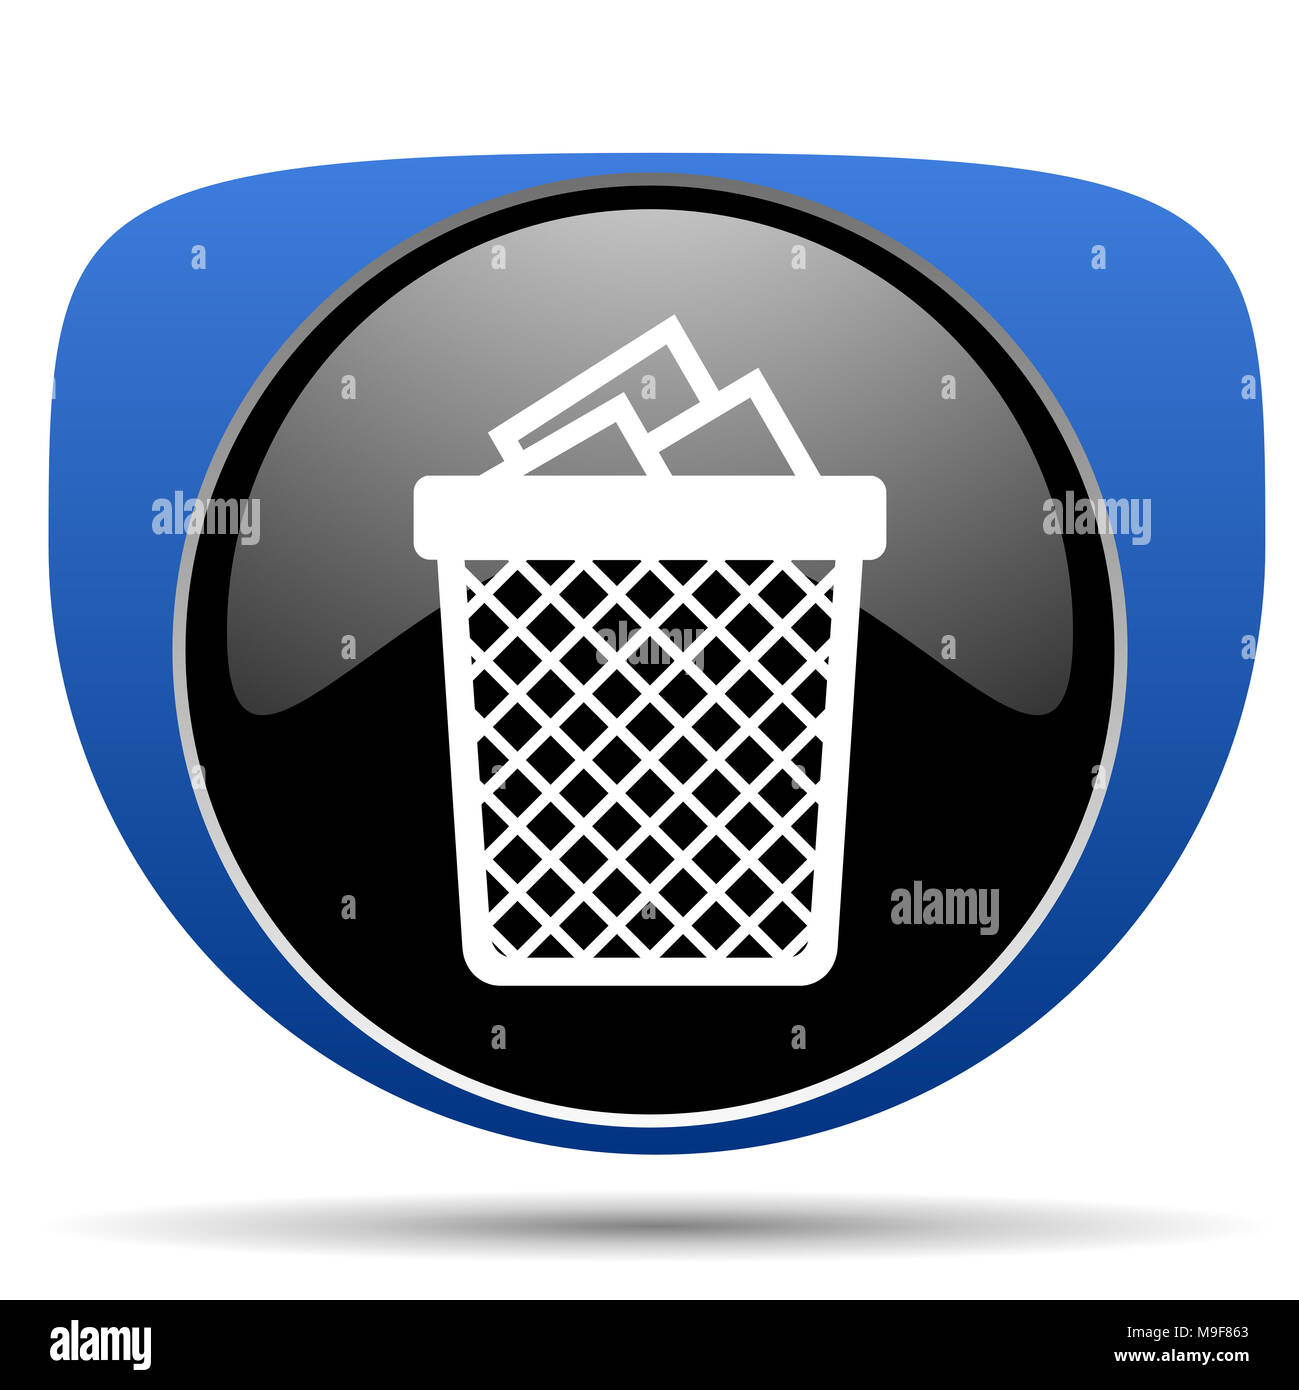 Trash can web icon - Stock Image